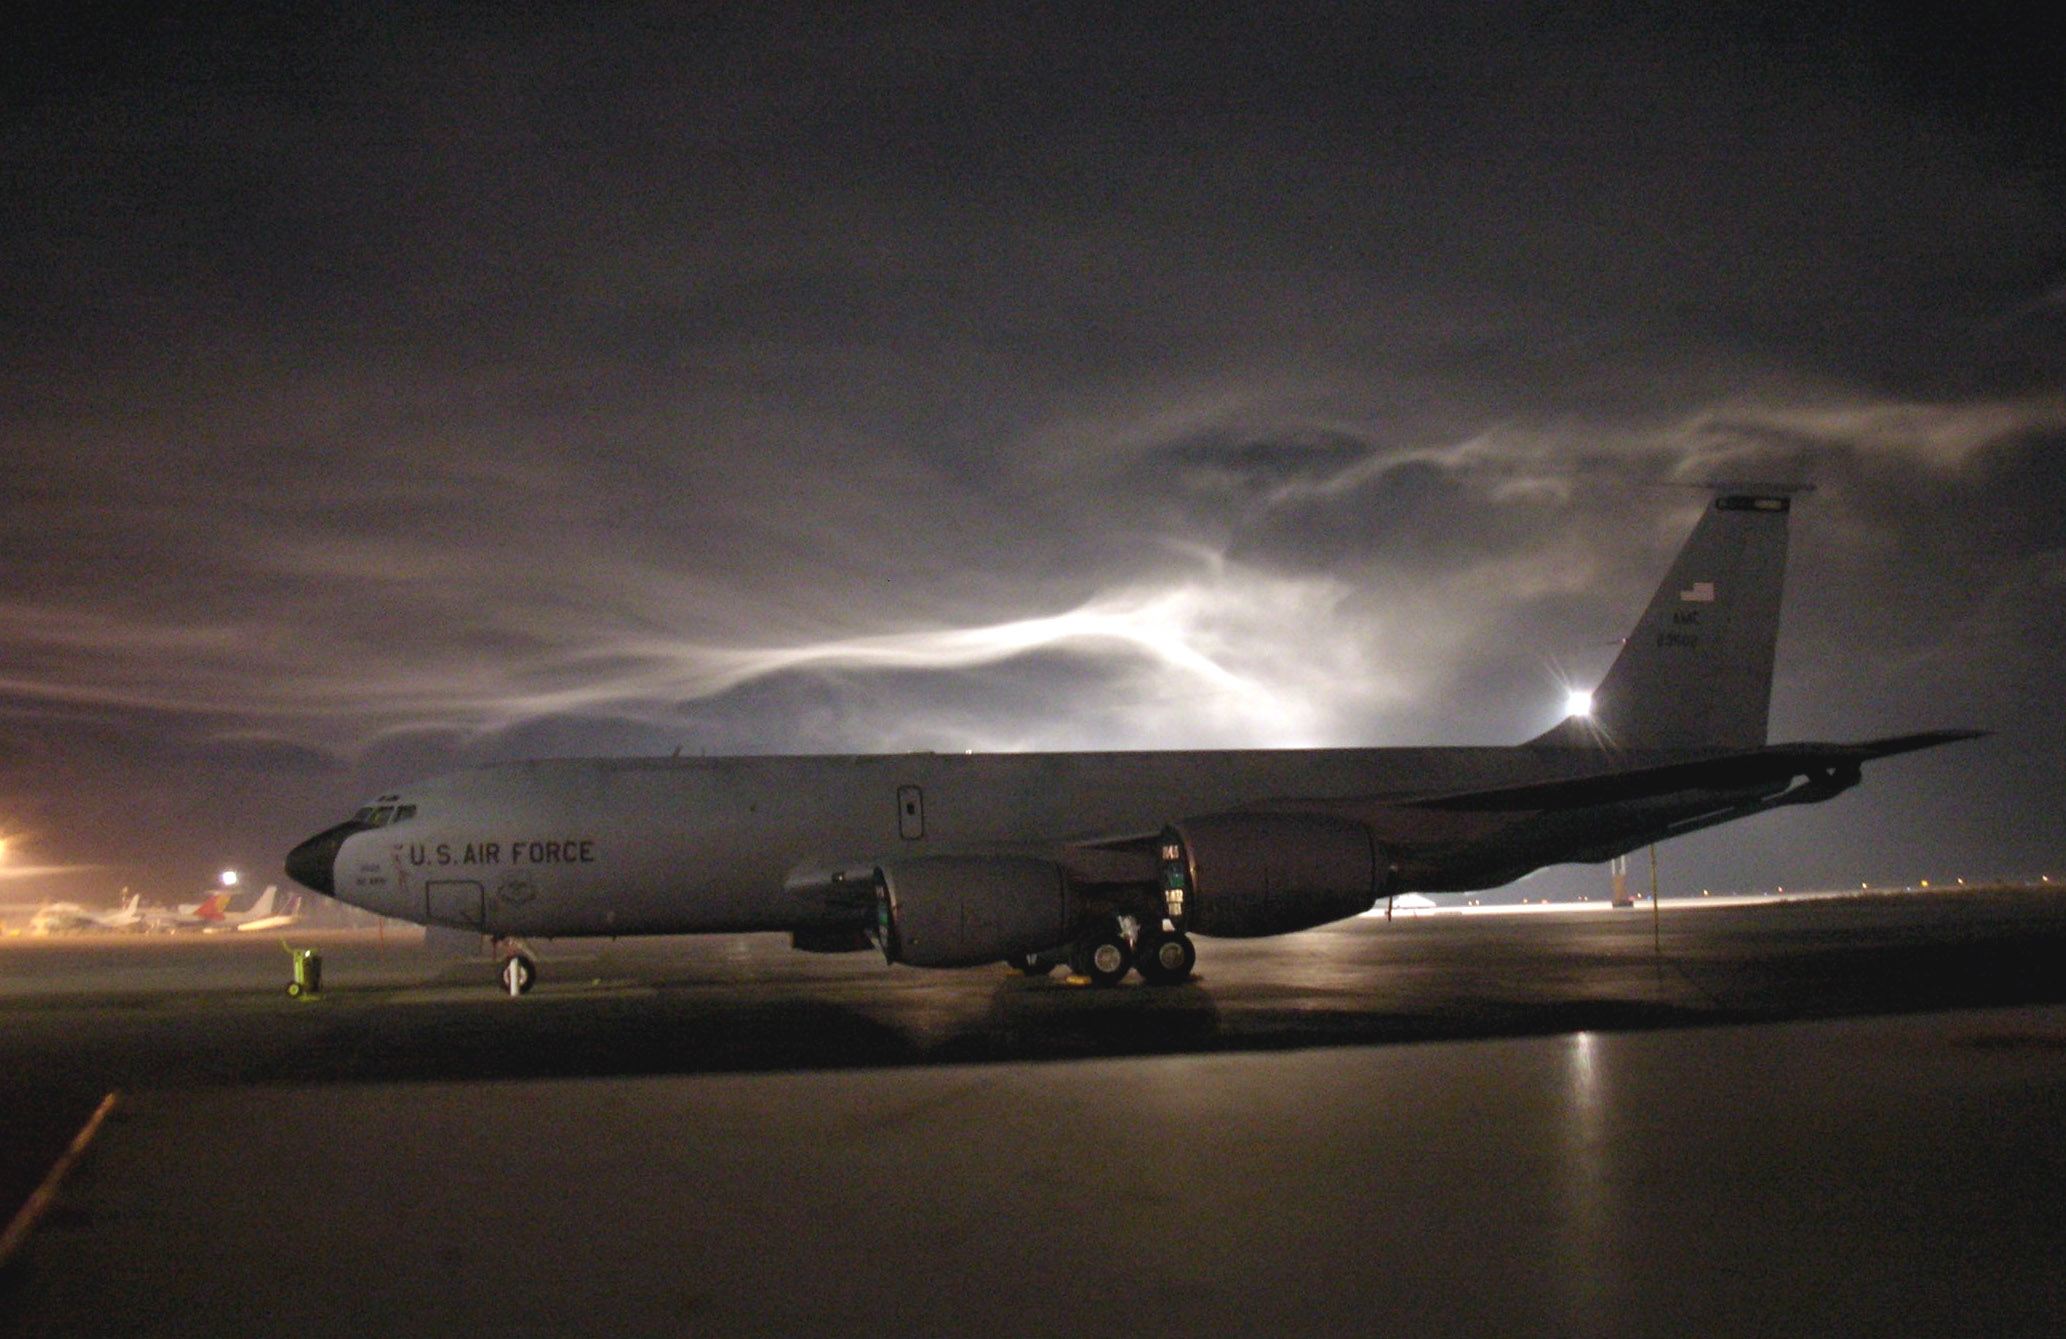 KC-135 Stratotanker - KC-135 Stratotanker on the tarmac at night.